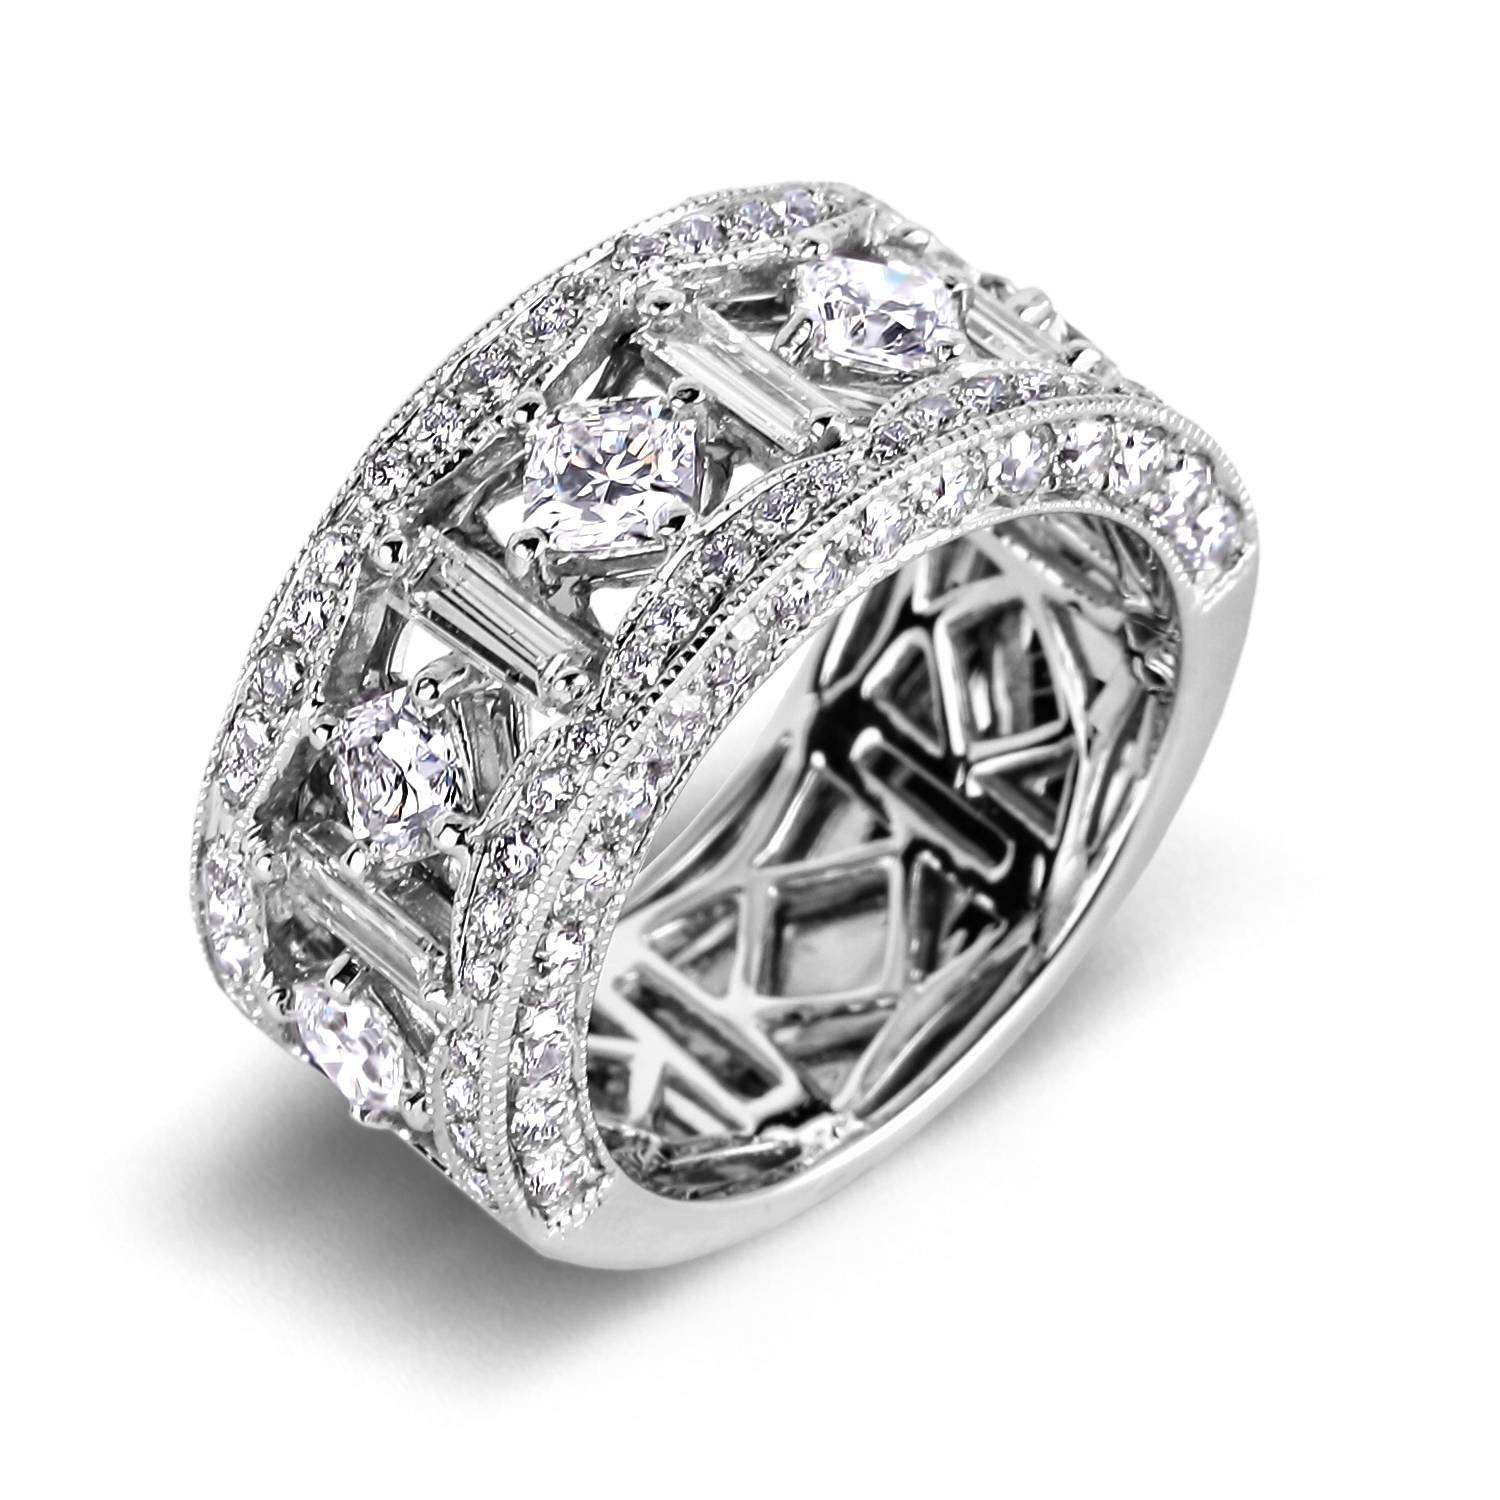 Wedding Anniversary Rings Diamonds | Wedding Ideas With Most Popular Wide Band Diamond Anniversary Rings (View 4 of 25)